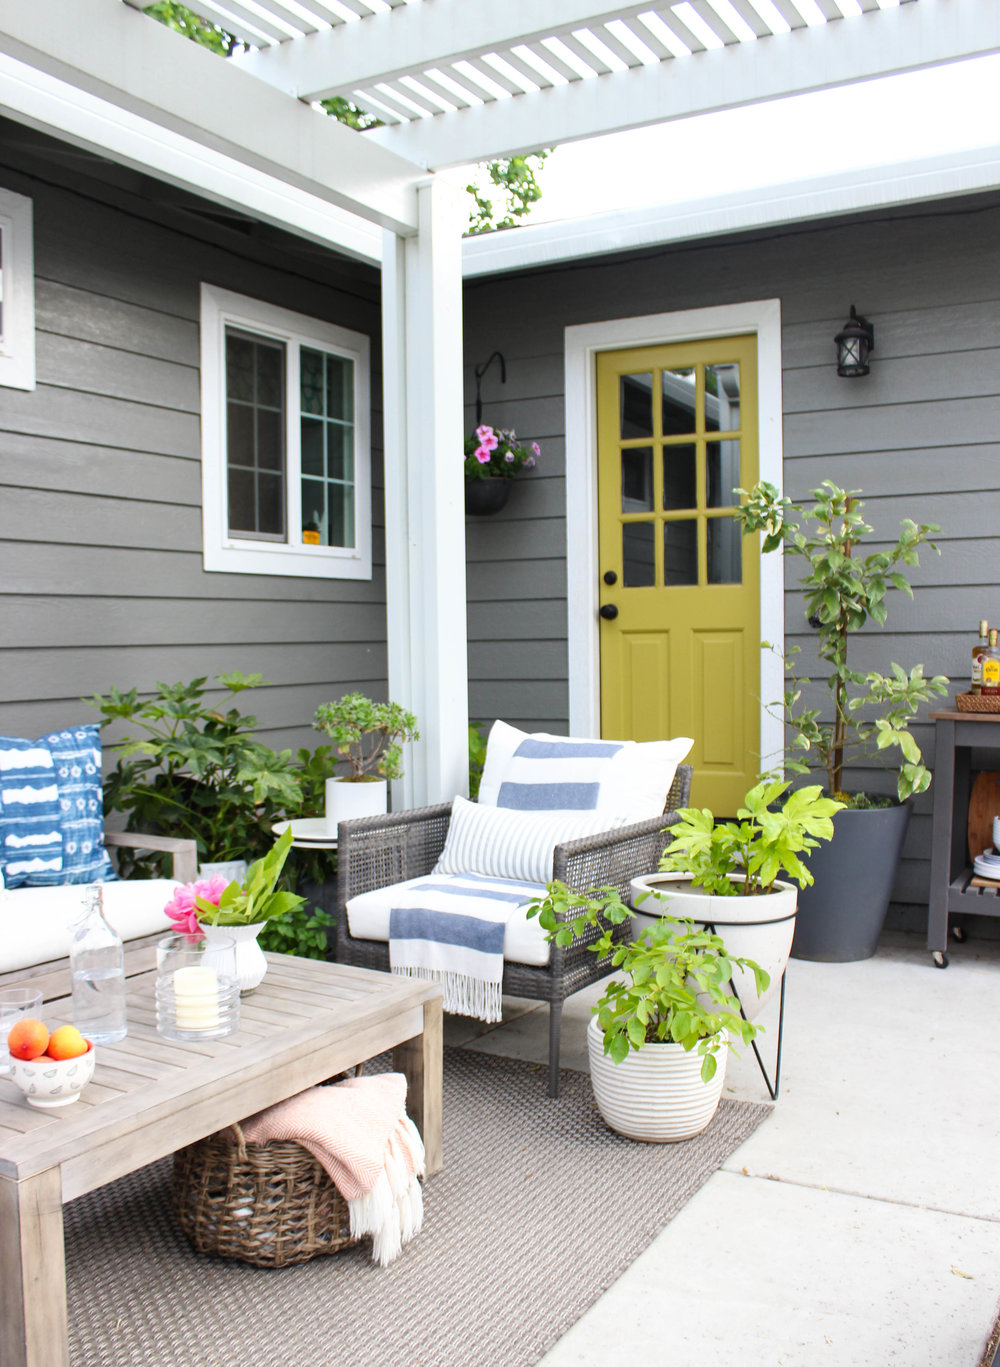 I M Super Excited To Share How Our Patio Is Shaping Up For Summer Right Next To Our Back Patio Door We Have A Variegated Dwarf Pink Lemonade Tree